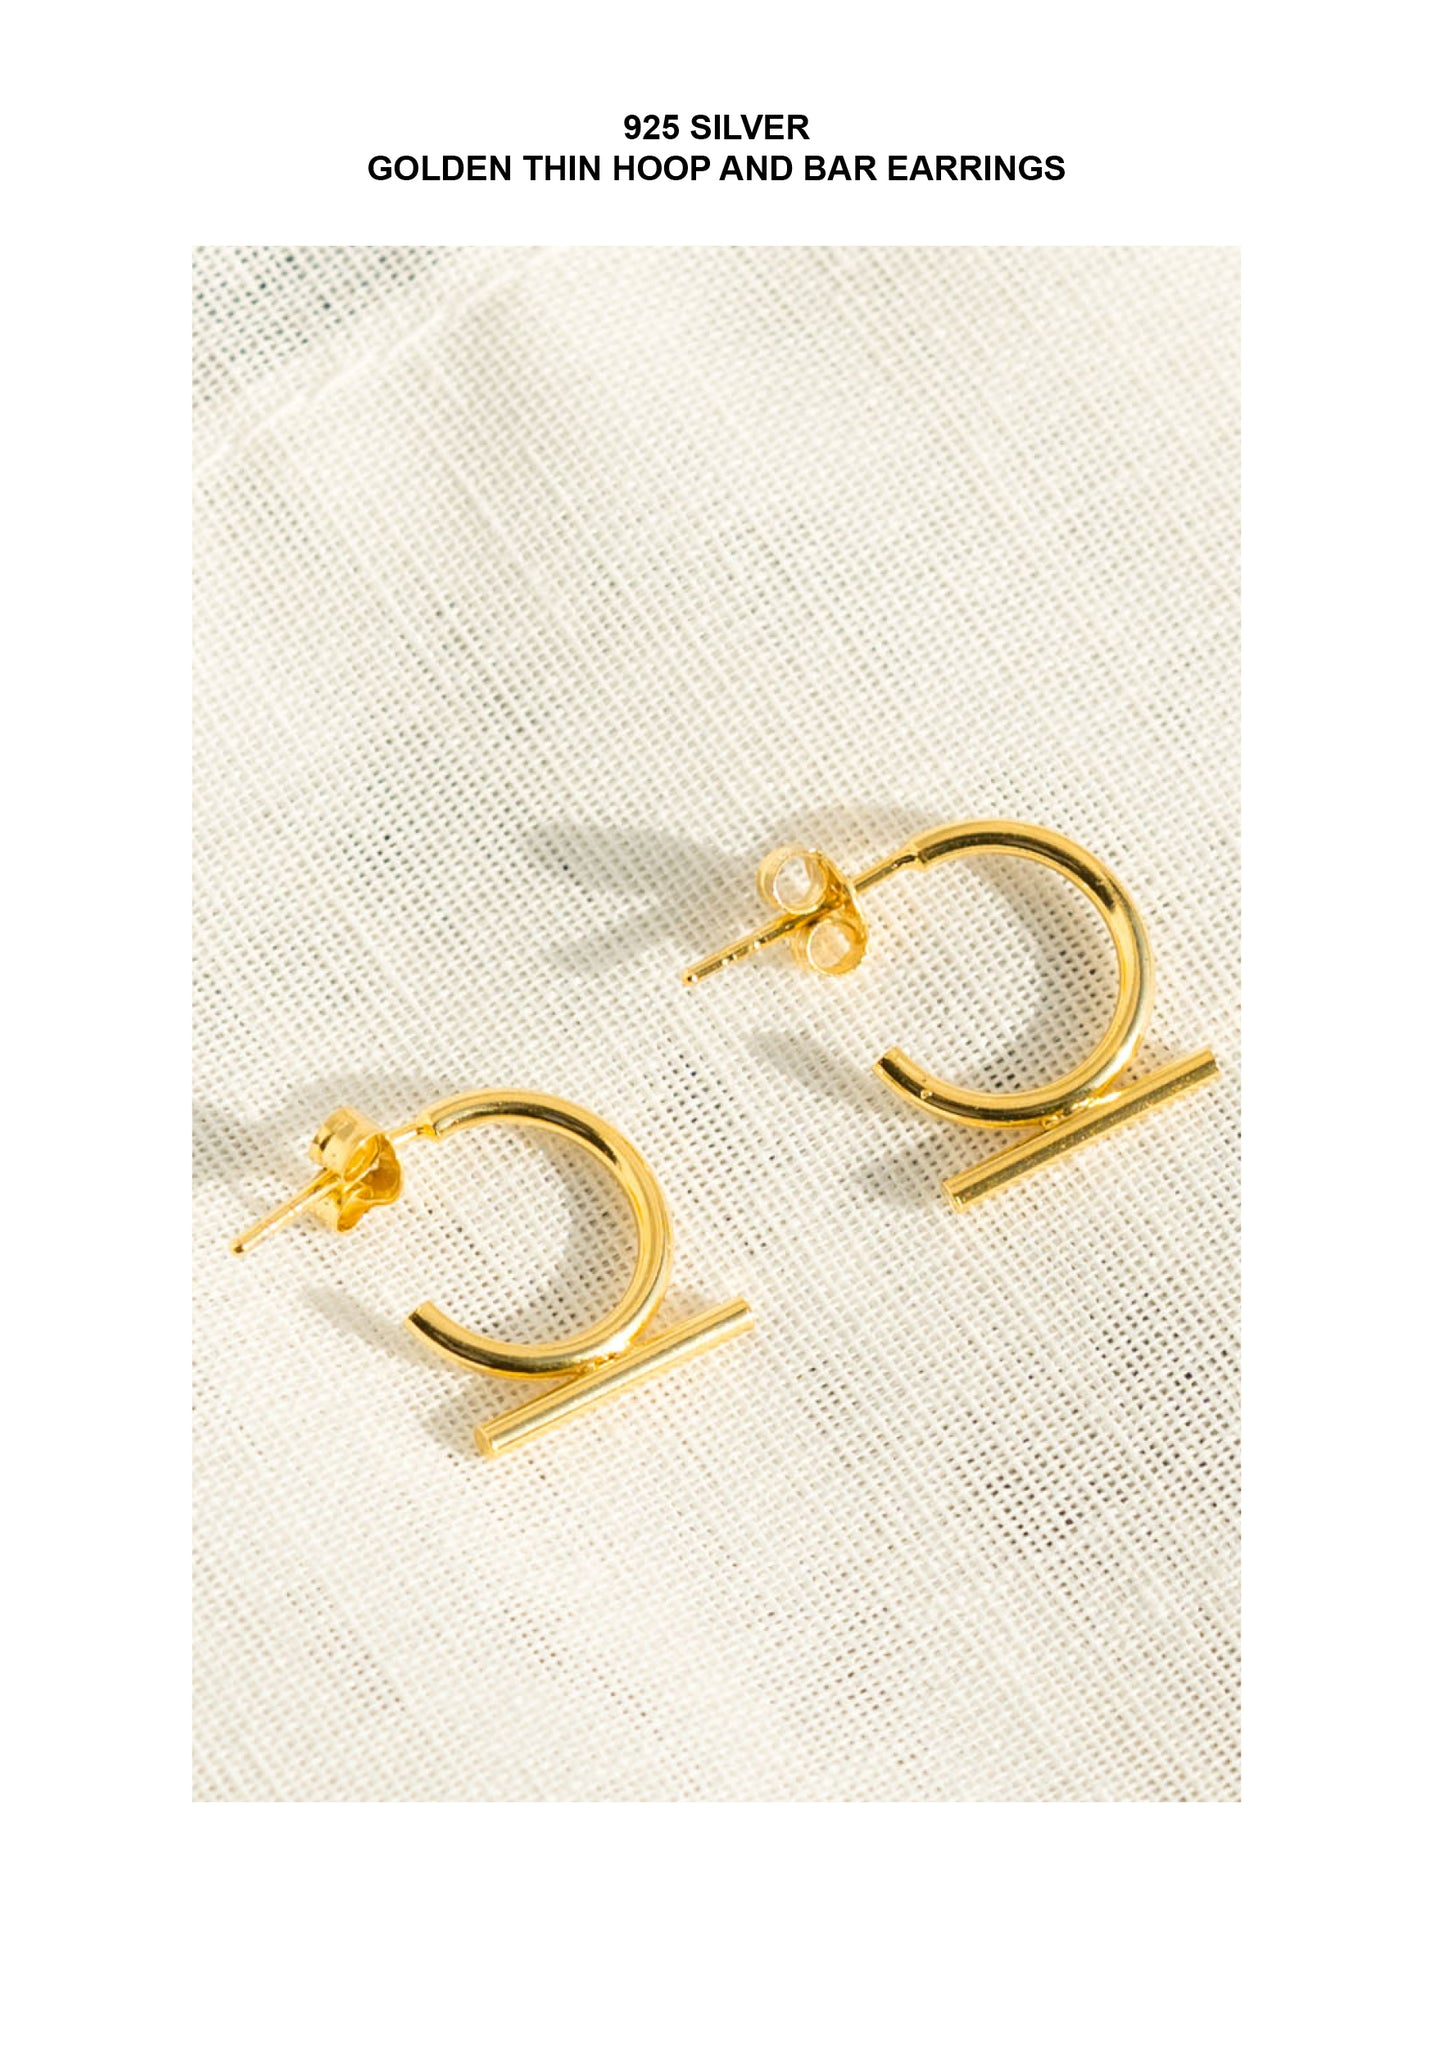 925 Silver Golden Thin Hoop And Bar Earrings - whoami